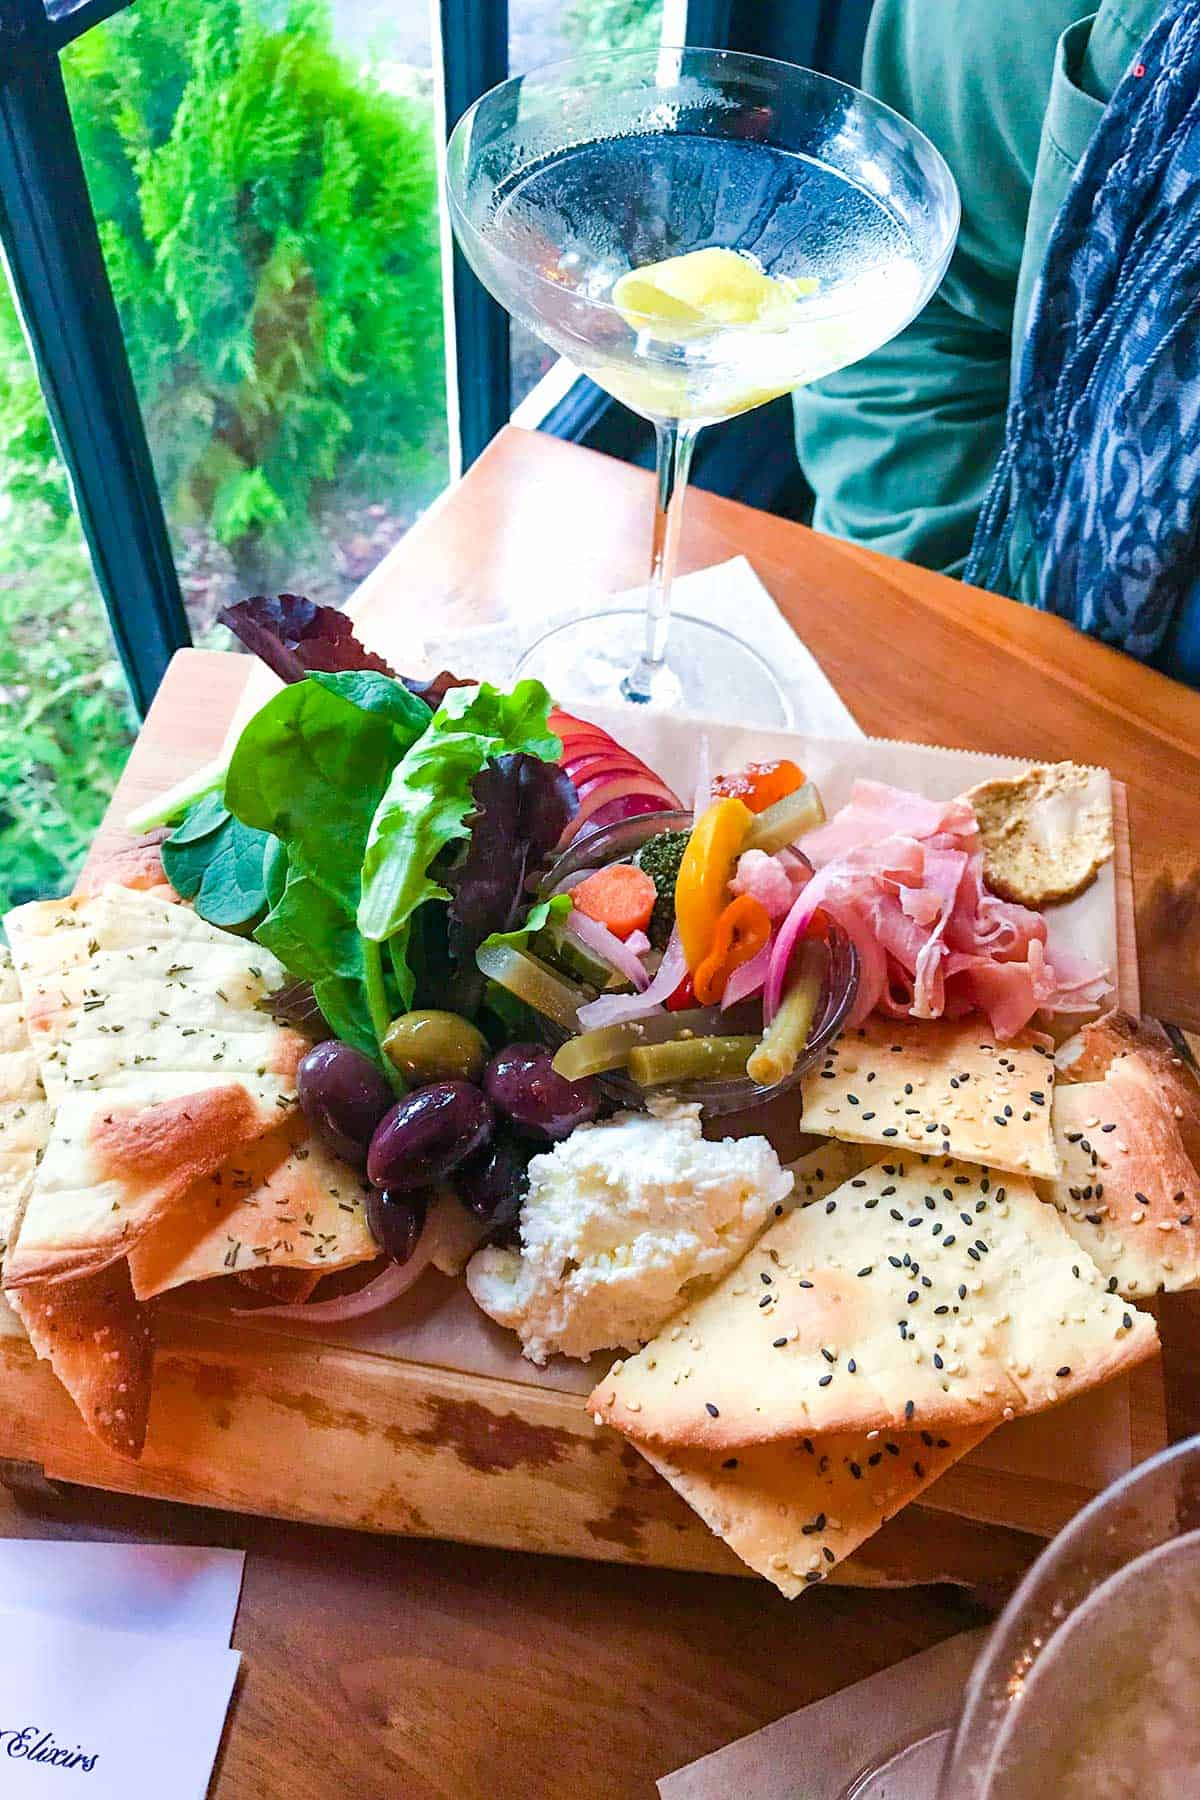 Cocktails, Cheese and Charcuterie from Barnacle on Orcas Island